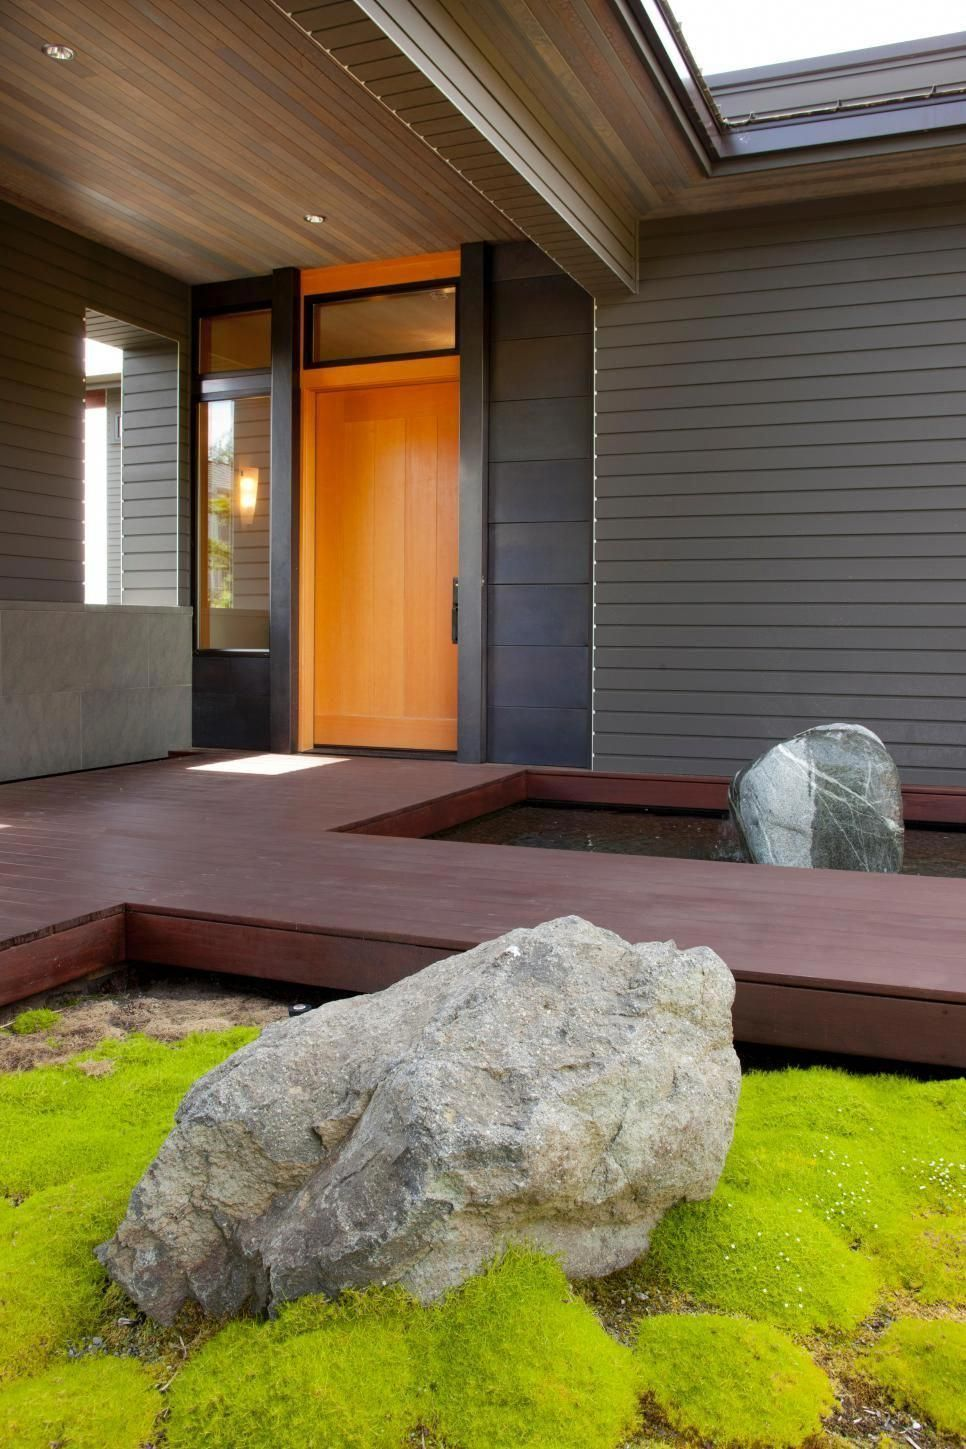 Large Boulders Flank The Dark Wood Walkway To This Contemporary Covered Porch A Sleek Wood Front Door With An Orange Tint Pops Against The Home S Gray Exterior Wood Front Doors Wood